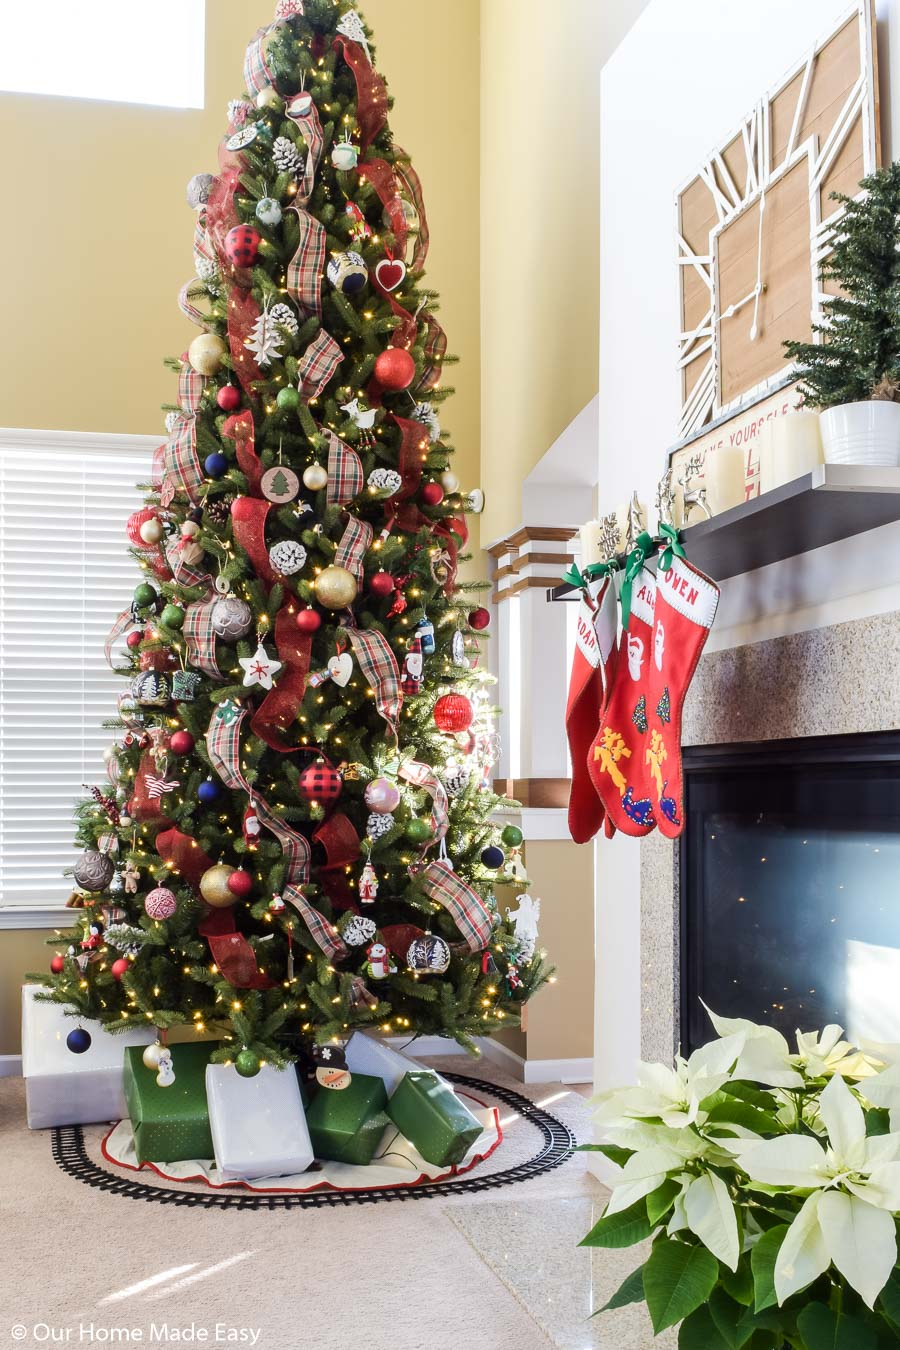 Decorate a Christmas tree with ribbon to add more fun, festive, and budget-friendly decorations to your tree